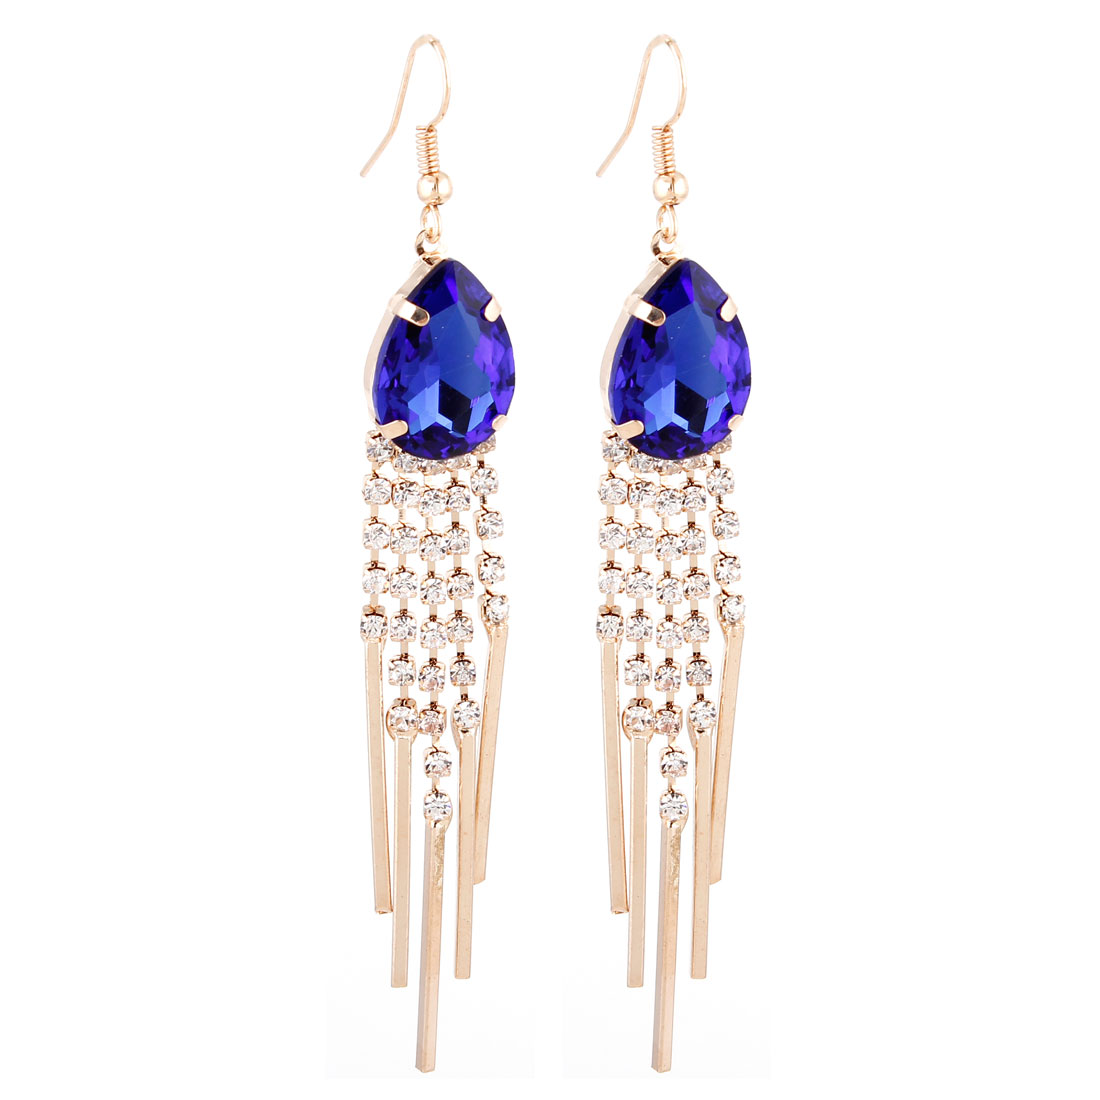 Pair Royal Blue Faux Rhinestone Accent Dangle Hook Earrings for Ladies